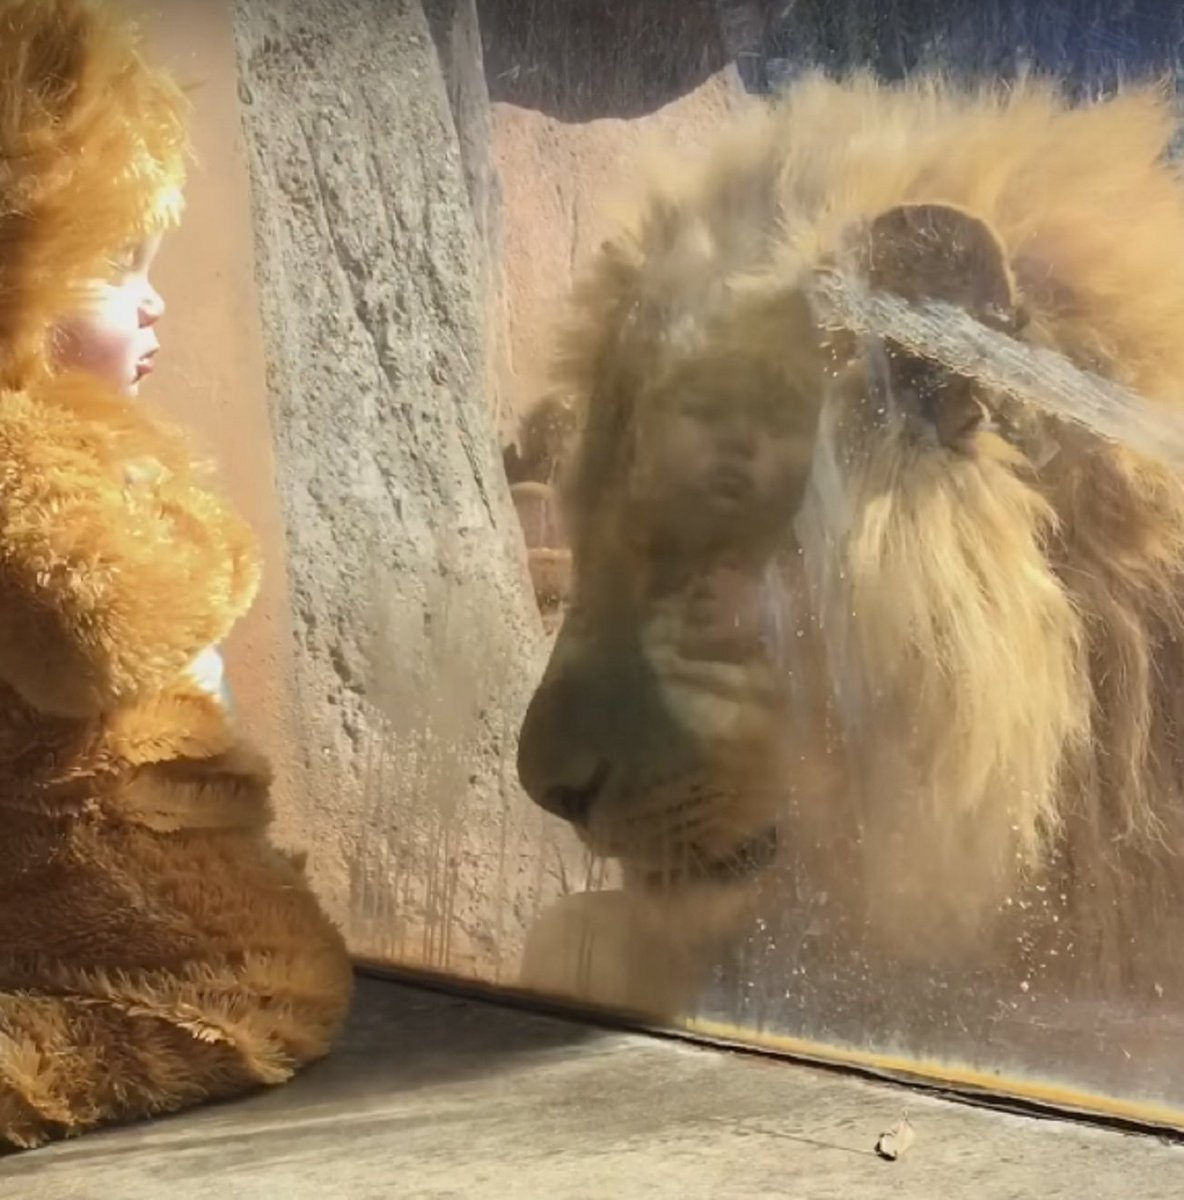 Baby In Lion Costume Meets Lion At Zoo   http:// dld.bz/fmKaW  &nbsp;    #baby #babies #animal #animals #lion #lions #zoo<br>http://pic.twitter.com/vqd3LLjpTn